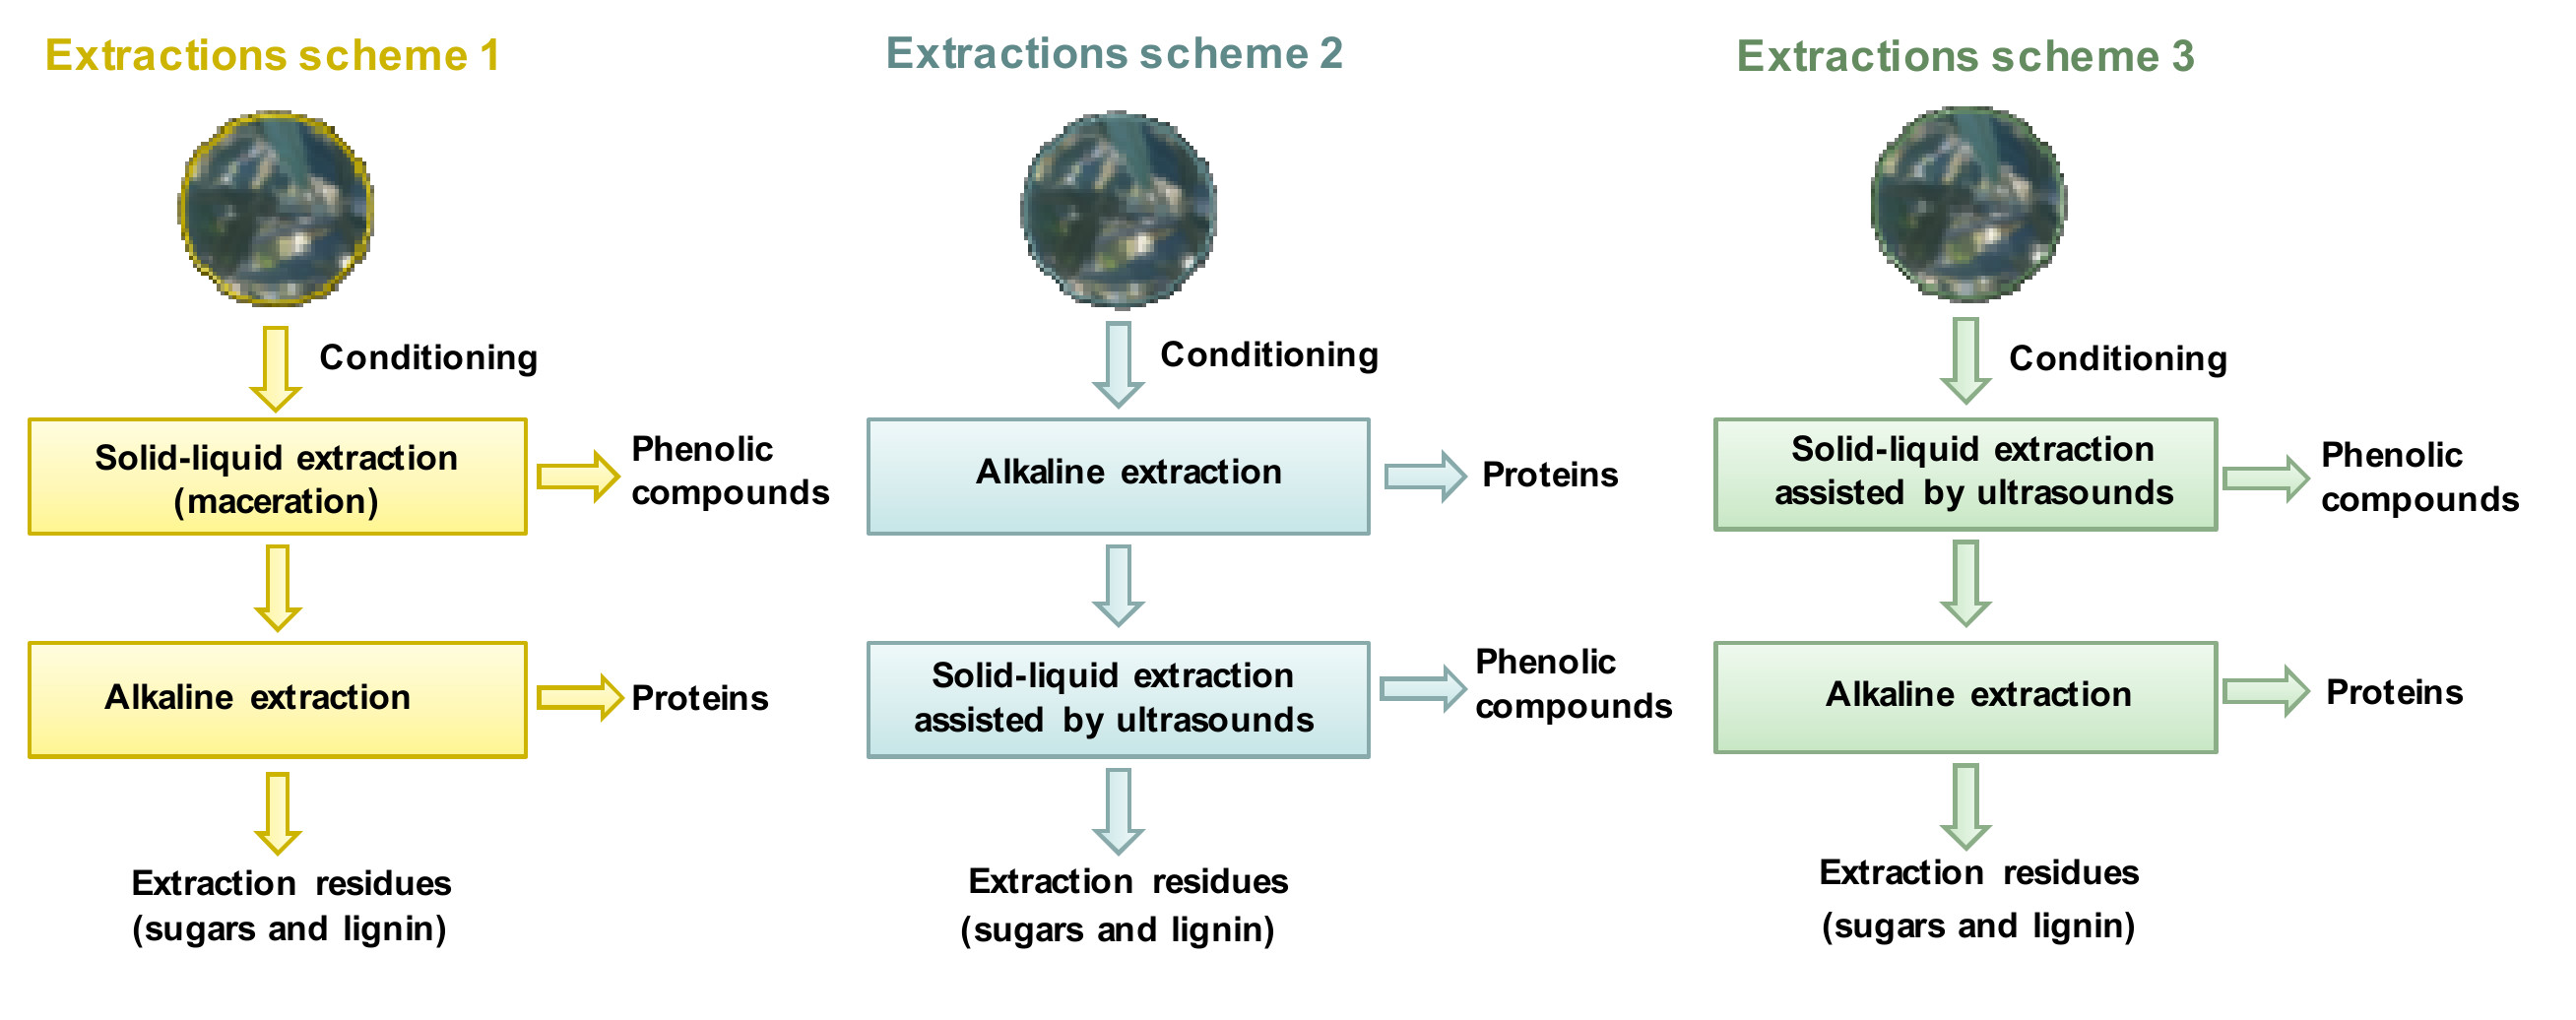 Foods Free Full Text Integrated Process For Sequential Extraction Of Bioactive Phenolic Compounds And Proteins From Mill And Field Olive Leaves And Effects On The Lignocellulosic Profile Html